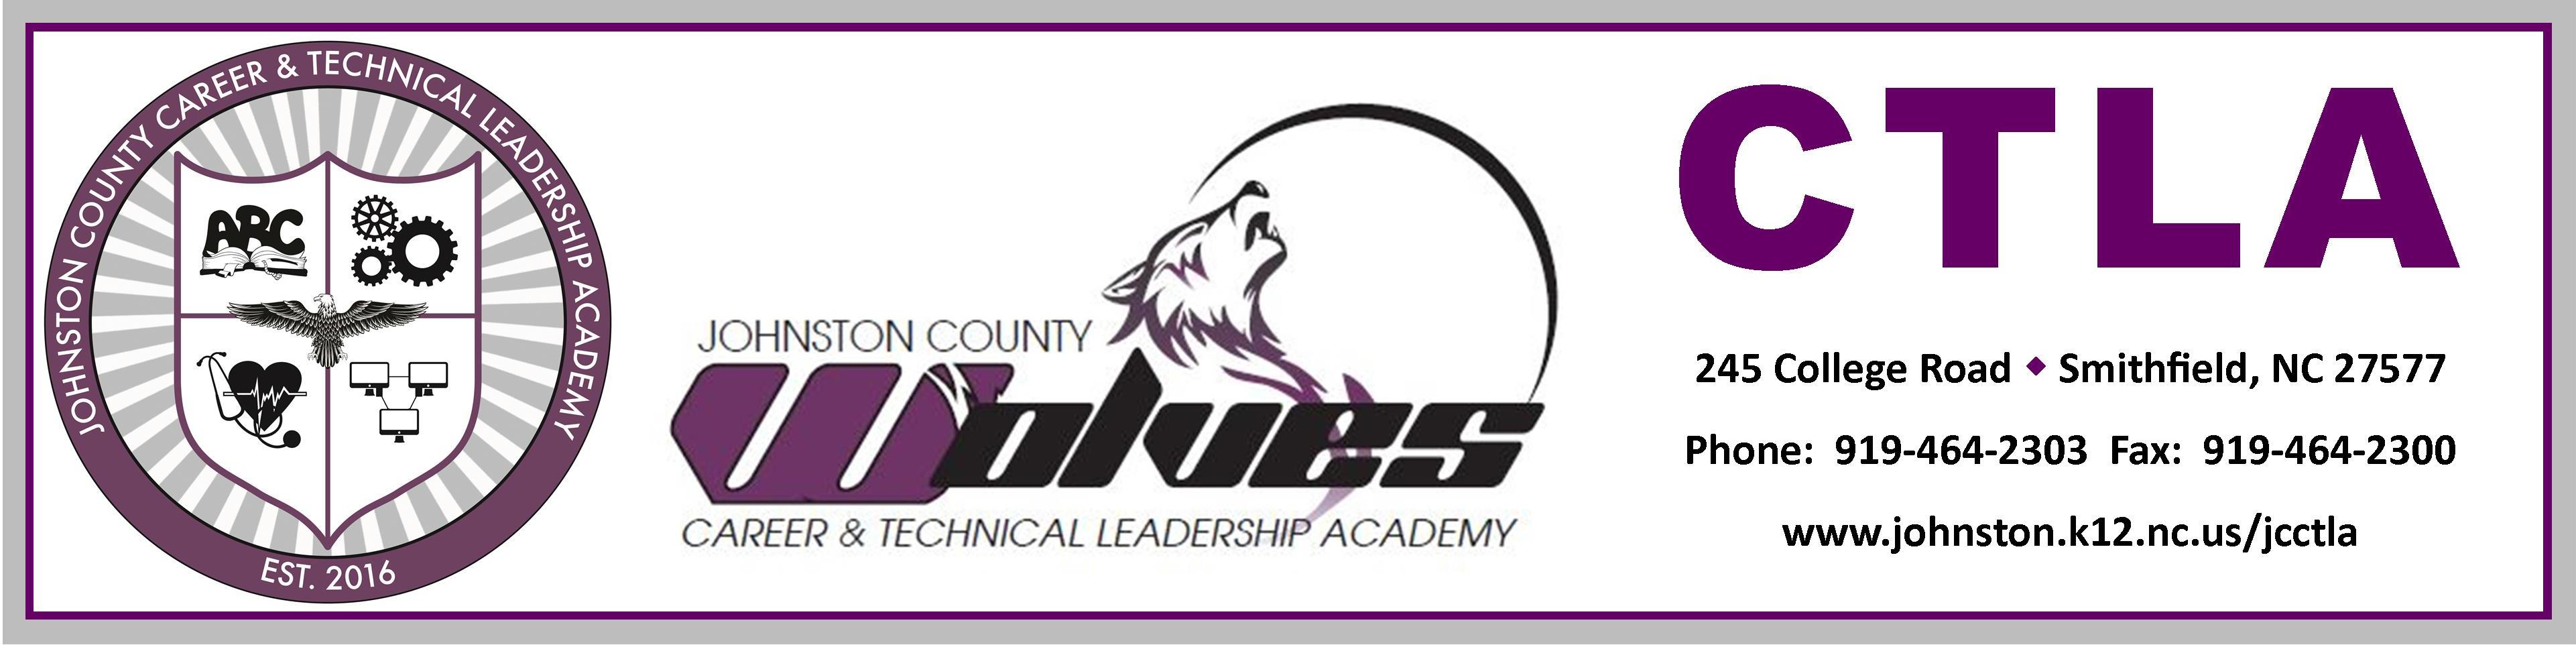 Career and Technical Leadership Academy Banner